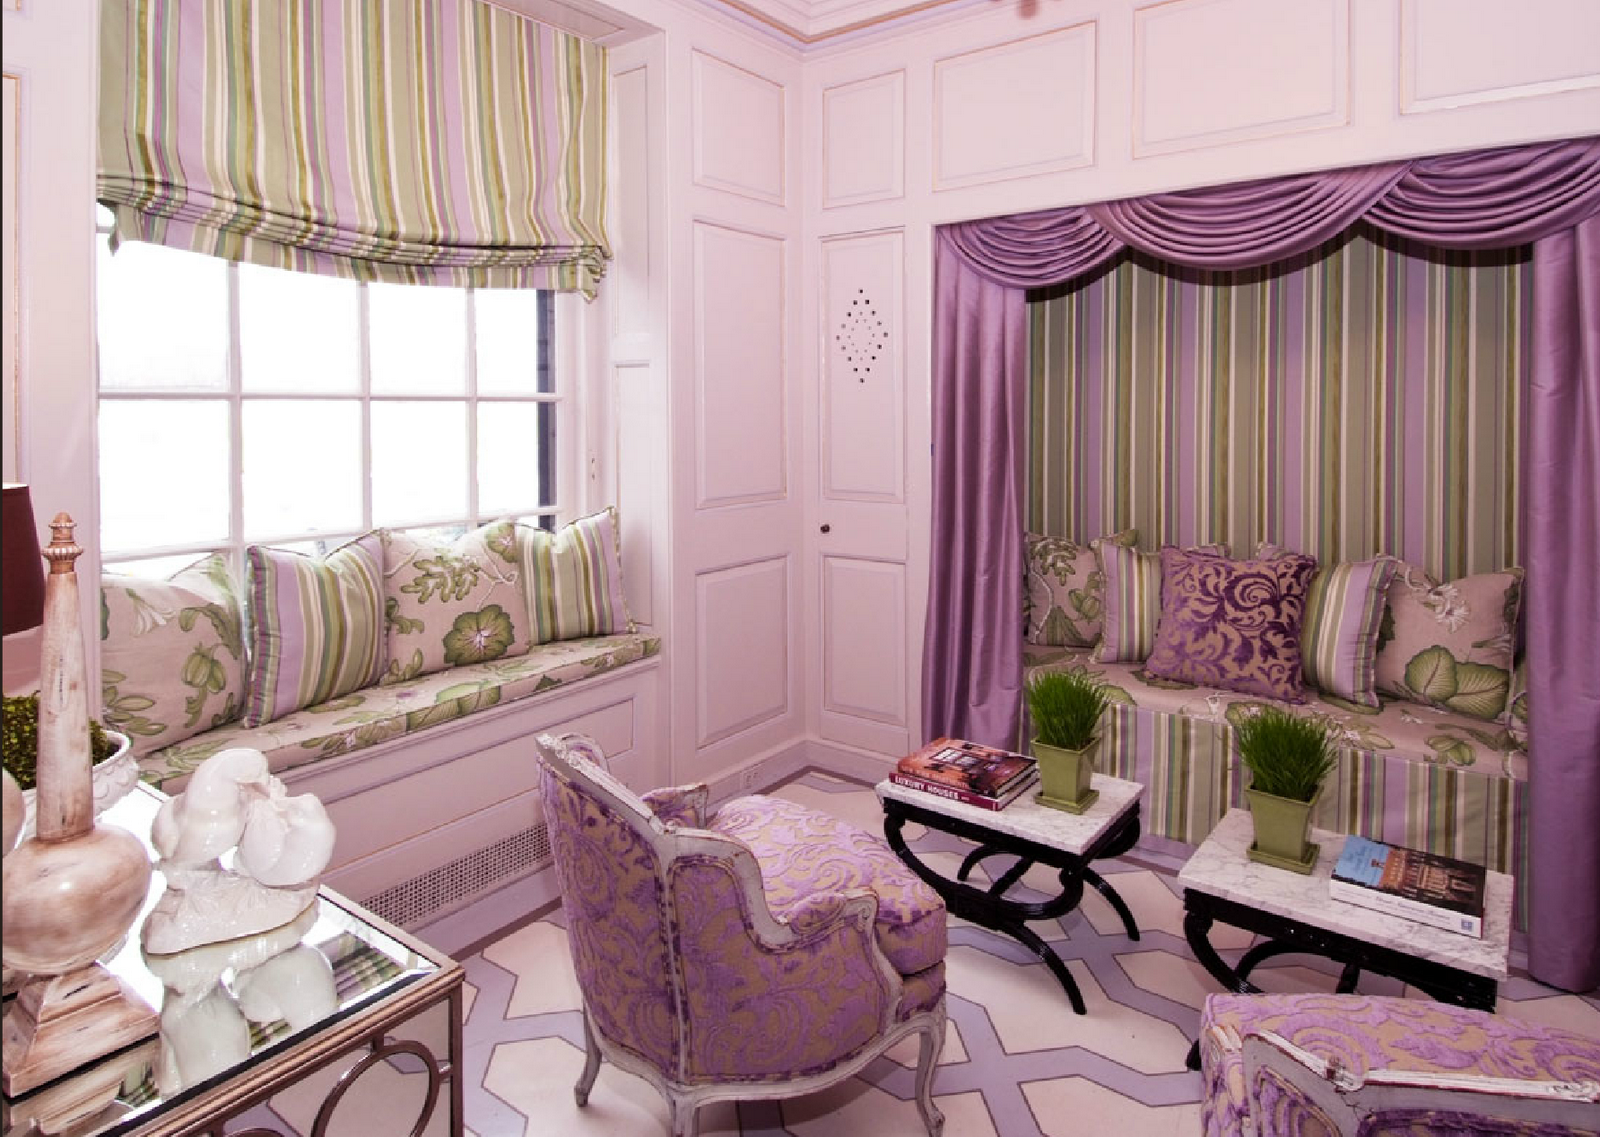 4 teen girls bedroom 7 interior design ideas Teen girl bedroom ideas